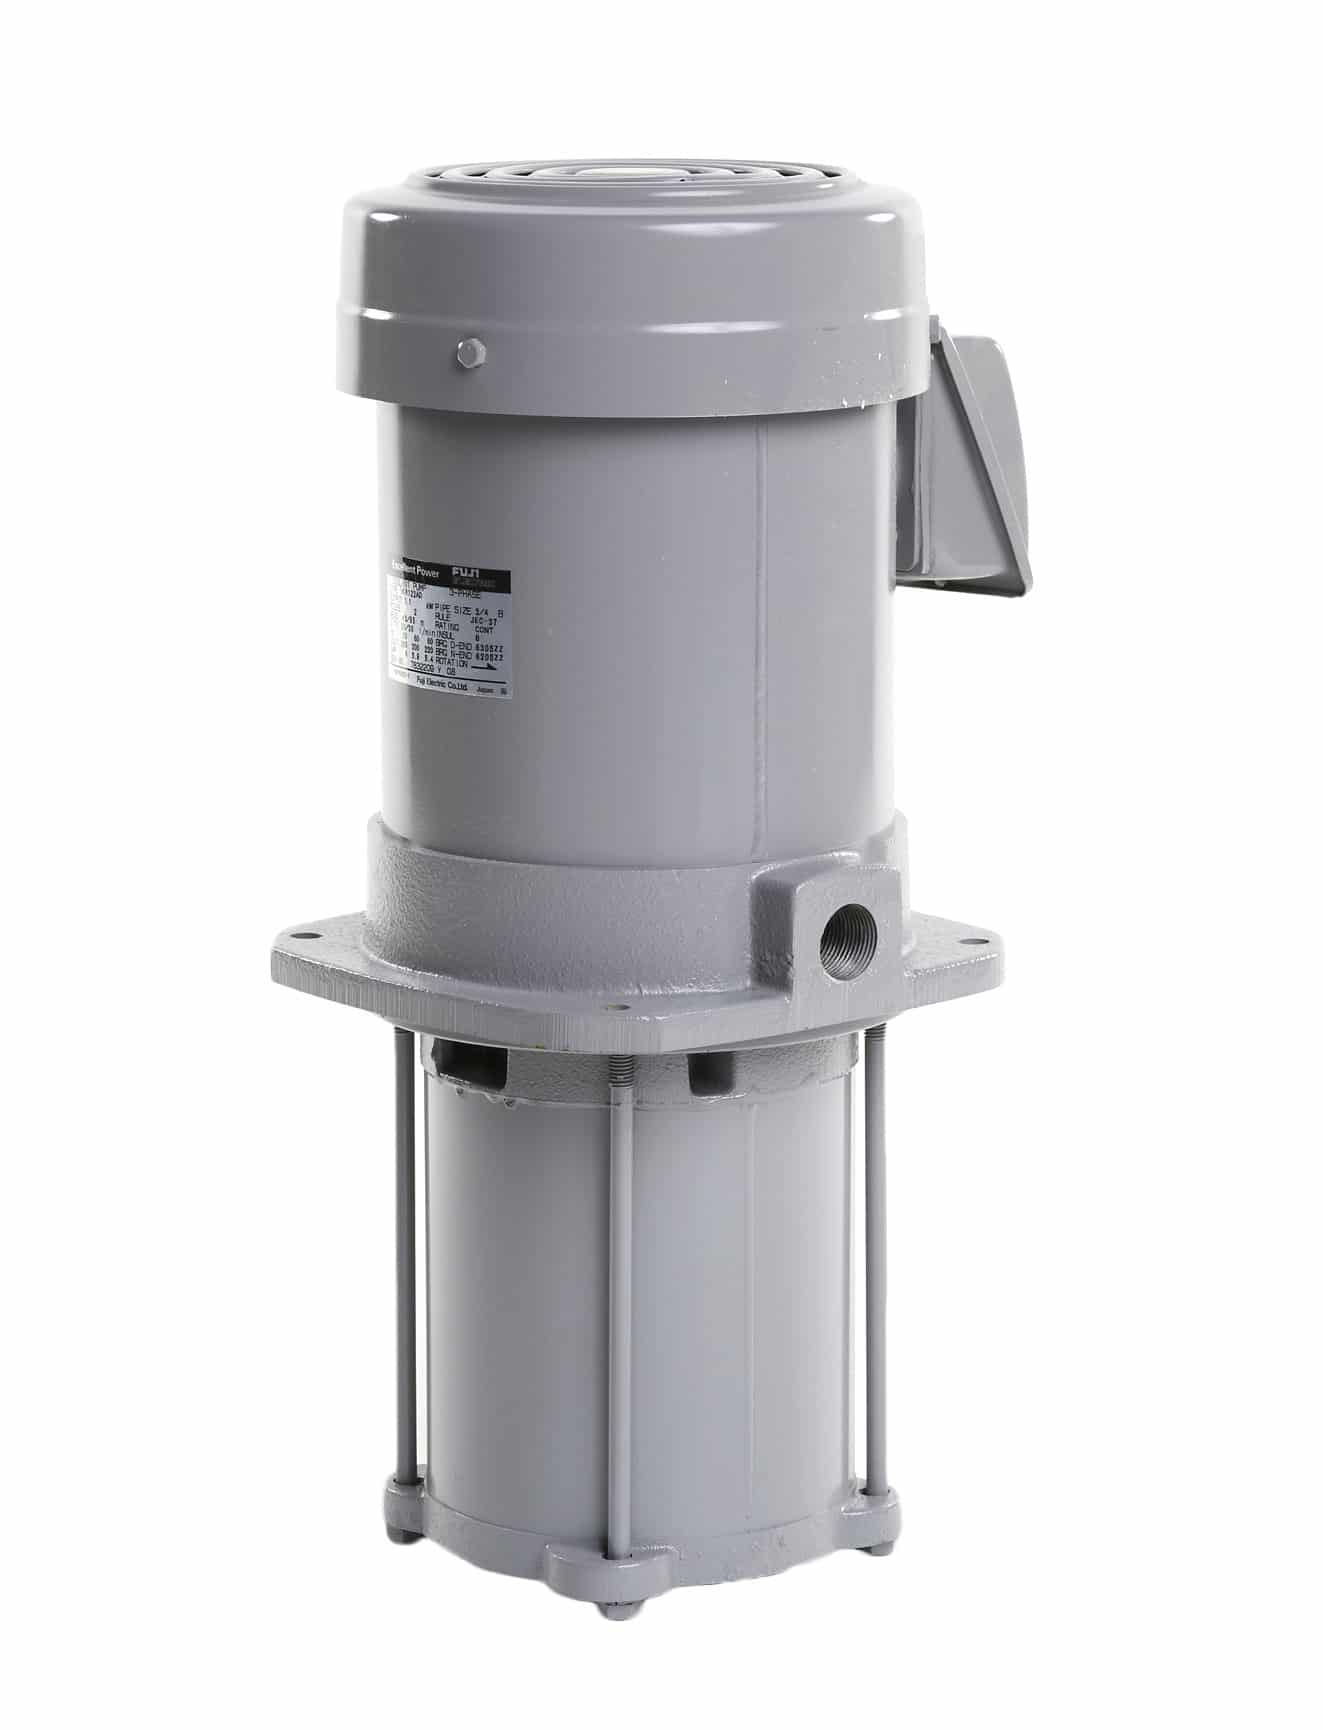 VKR – Submersible Pumps